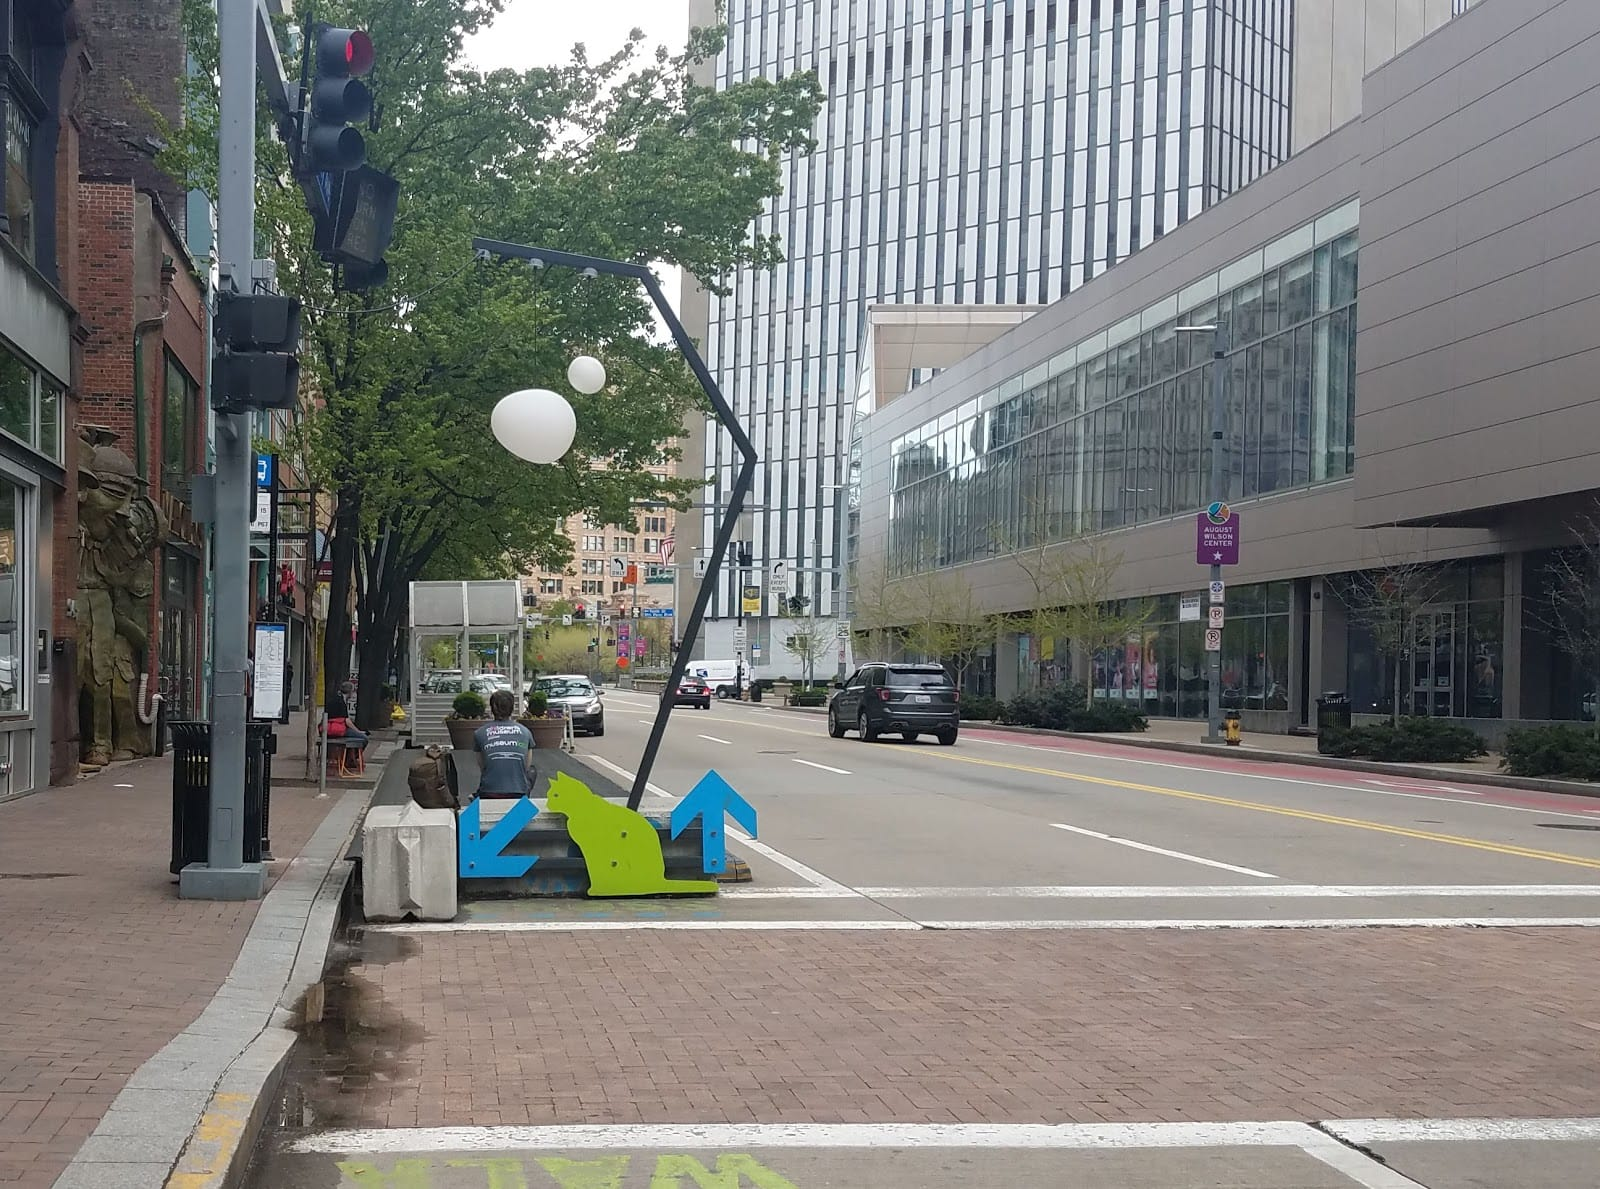 The curb extensions at a bus stop on Liberty Ave in Downtown serve multiple purposes: shortens the crossing distance for pedestrians, creates a sitting area, adds space for landscaping, makes it easier for a bus pull to the curb, and even adds a place to eat take-out